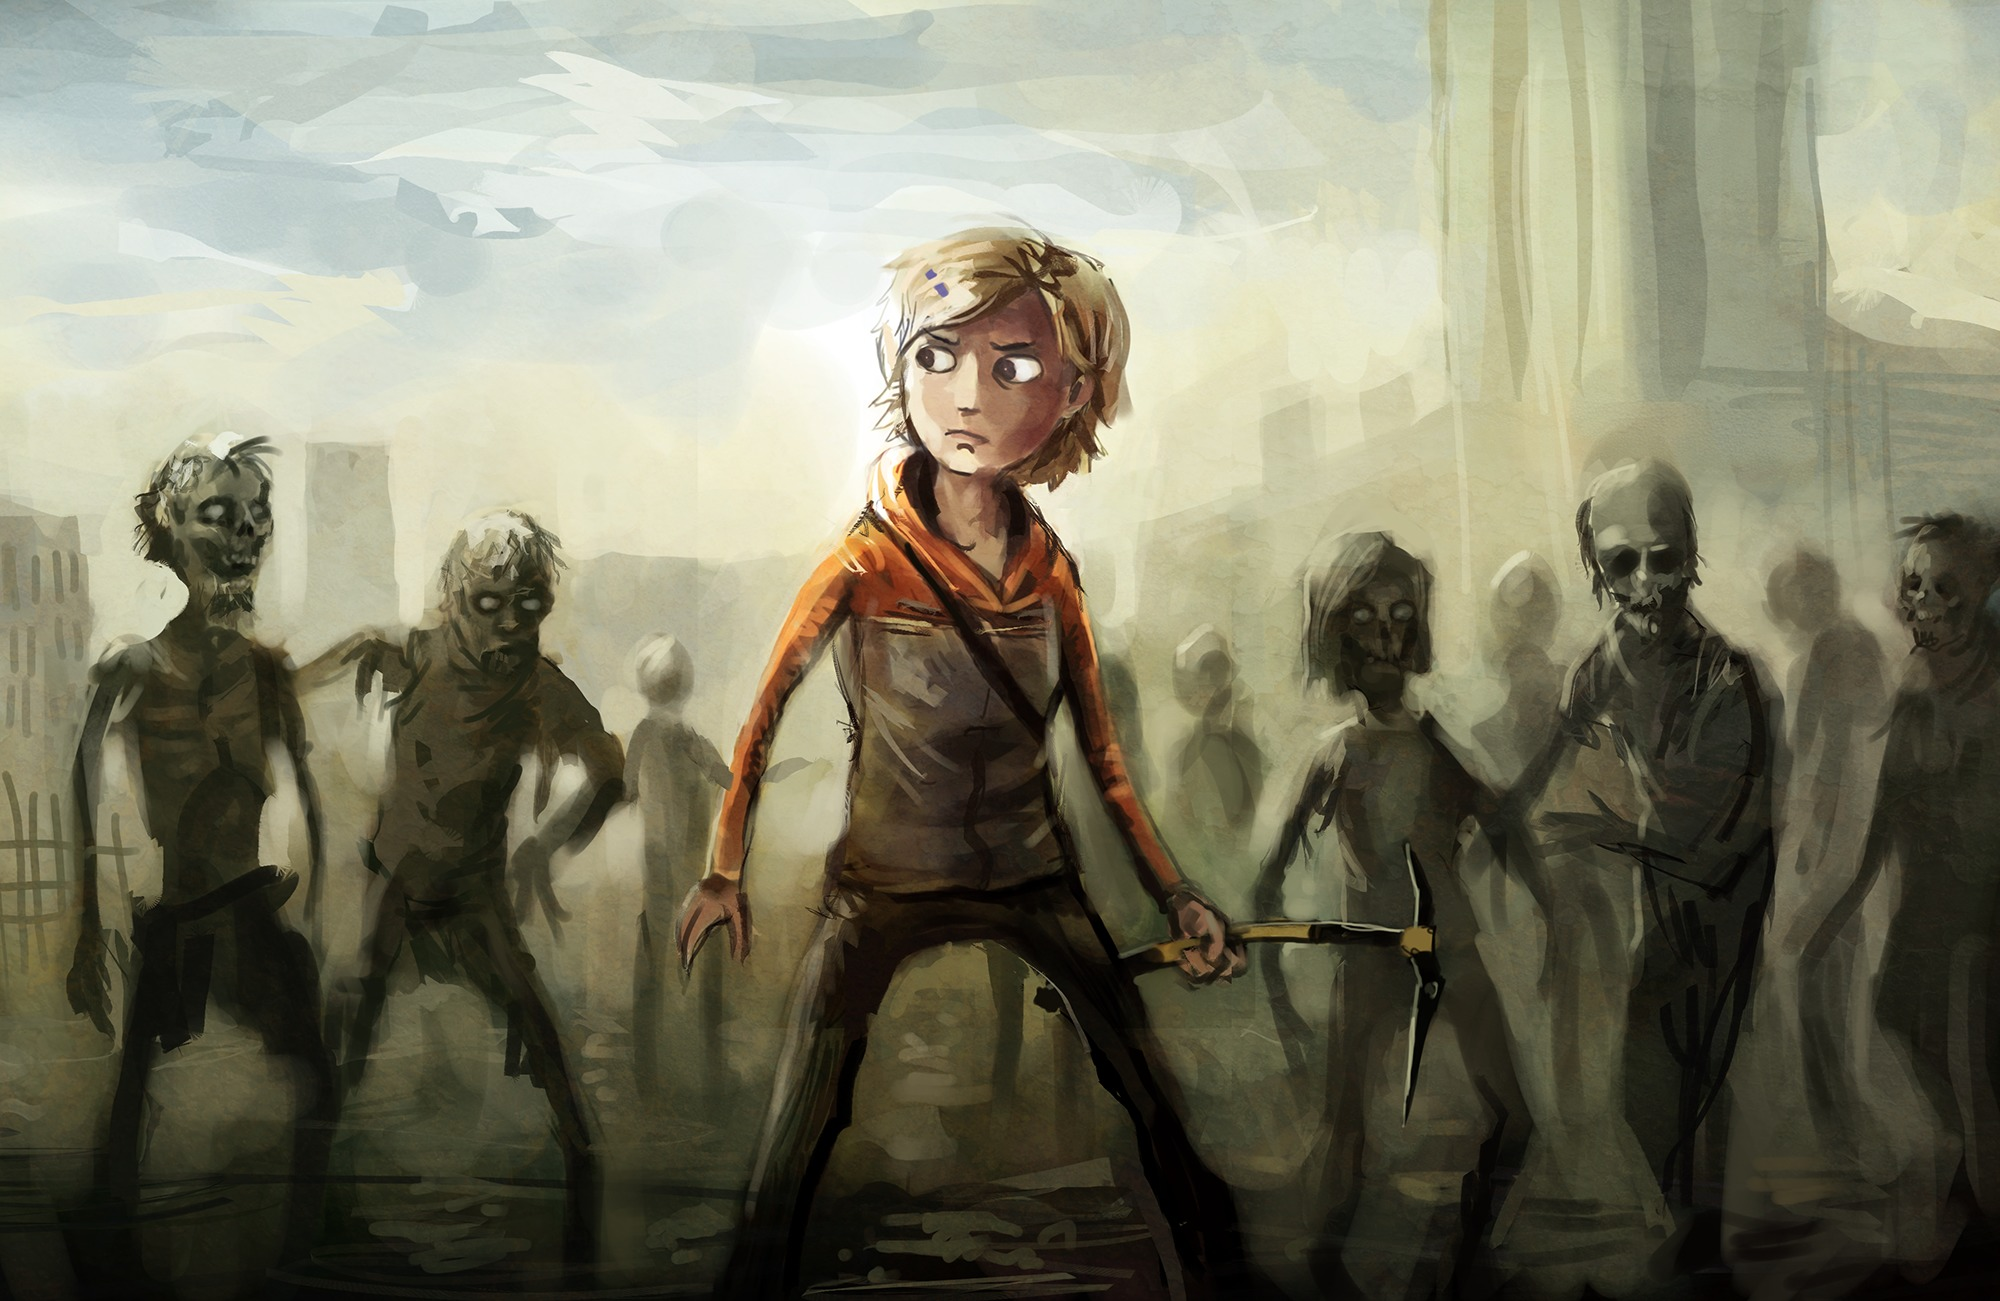 the walking dead / wallpaper - molly image - indie db